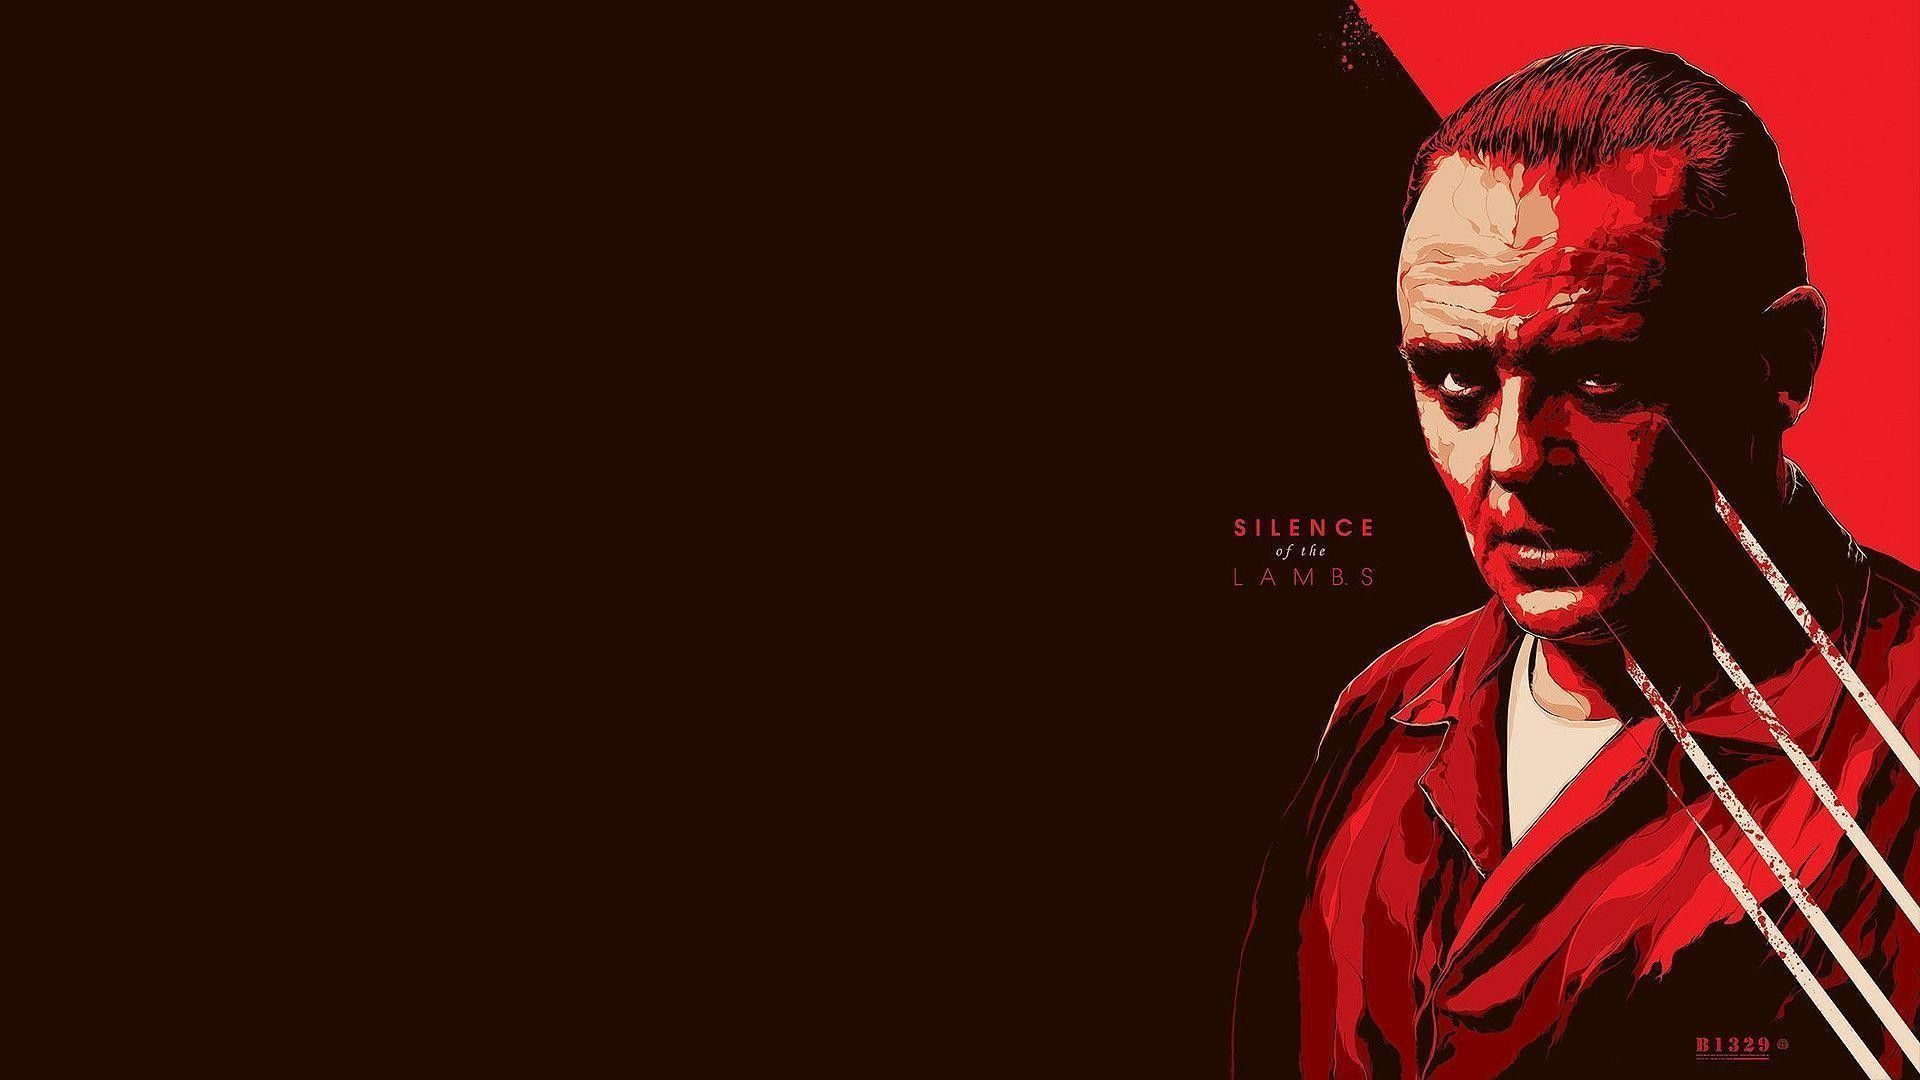 1920x1080 The Silence Of The Lambs Wallpapers Hd Windows